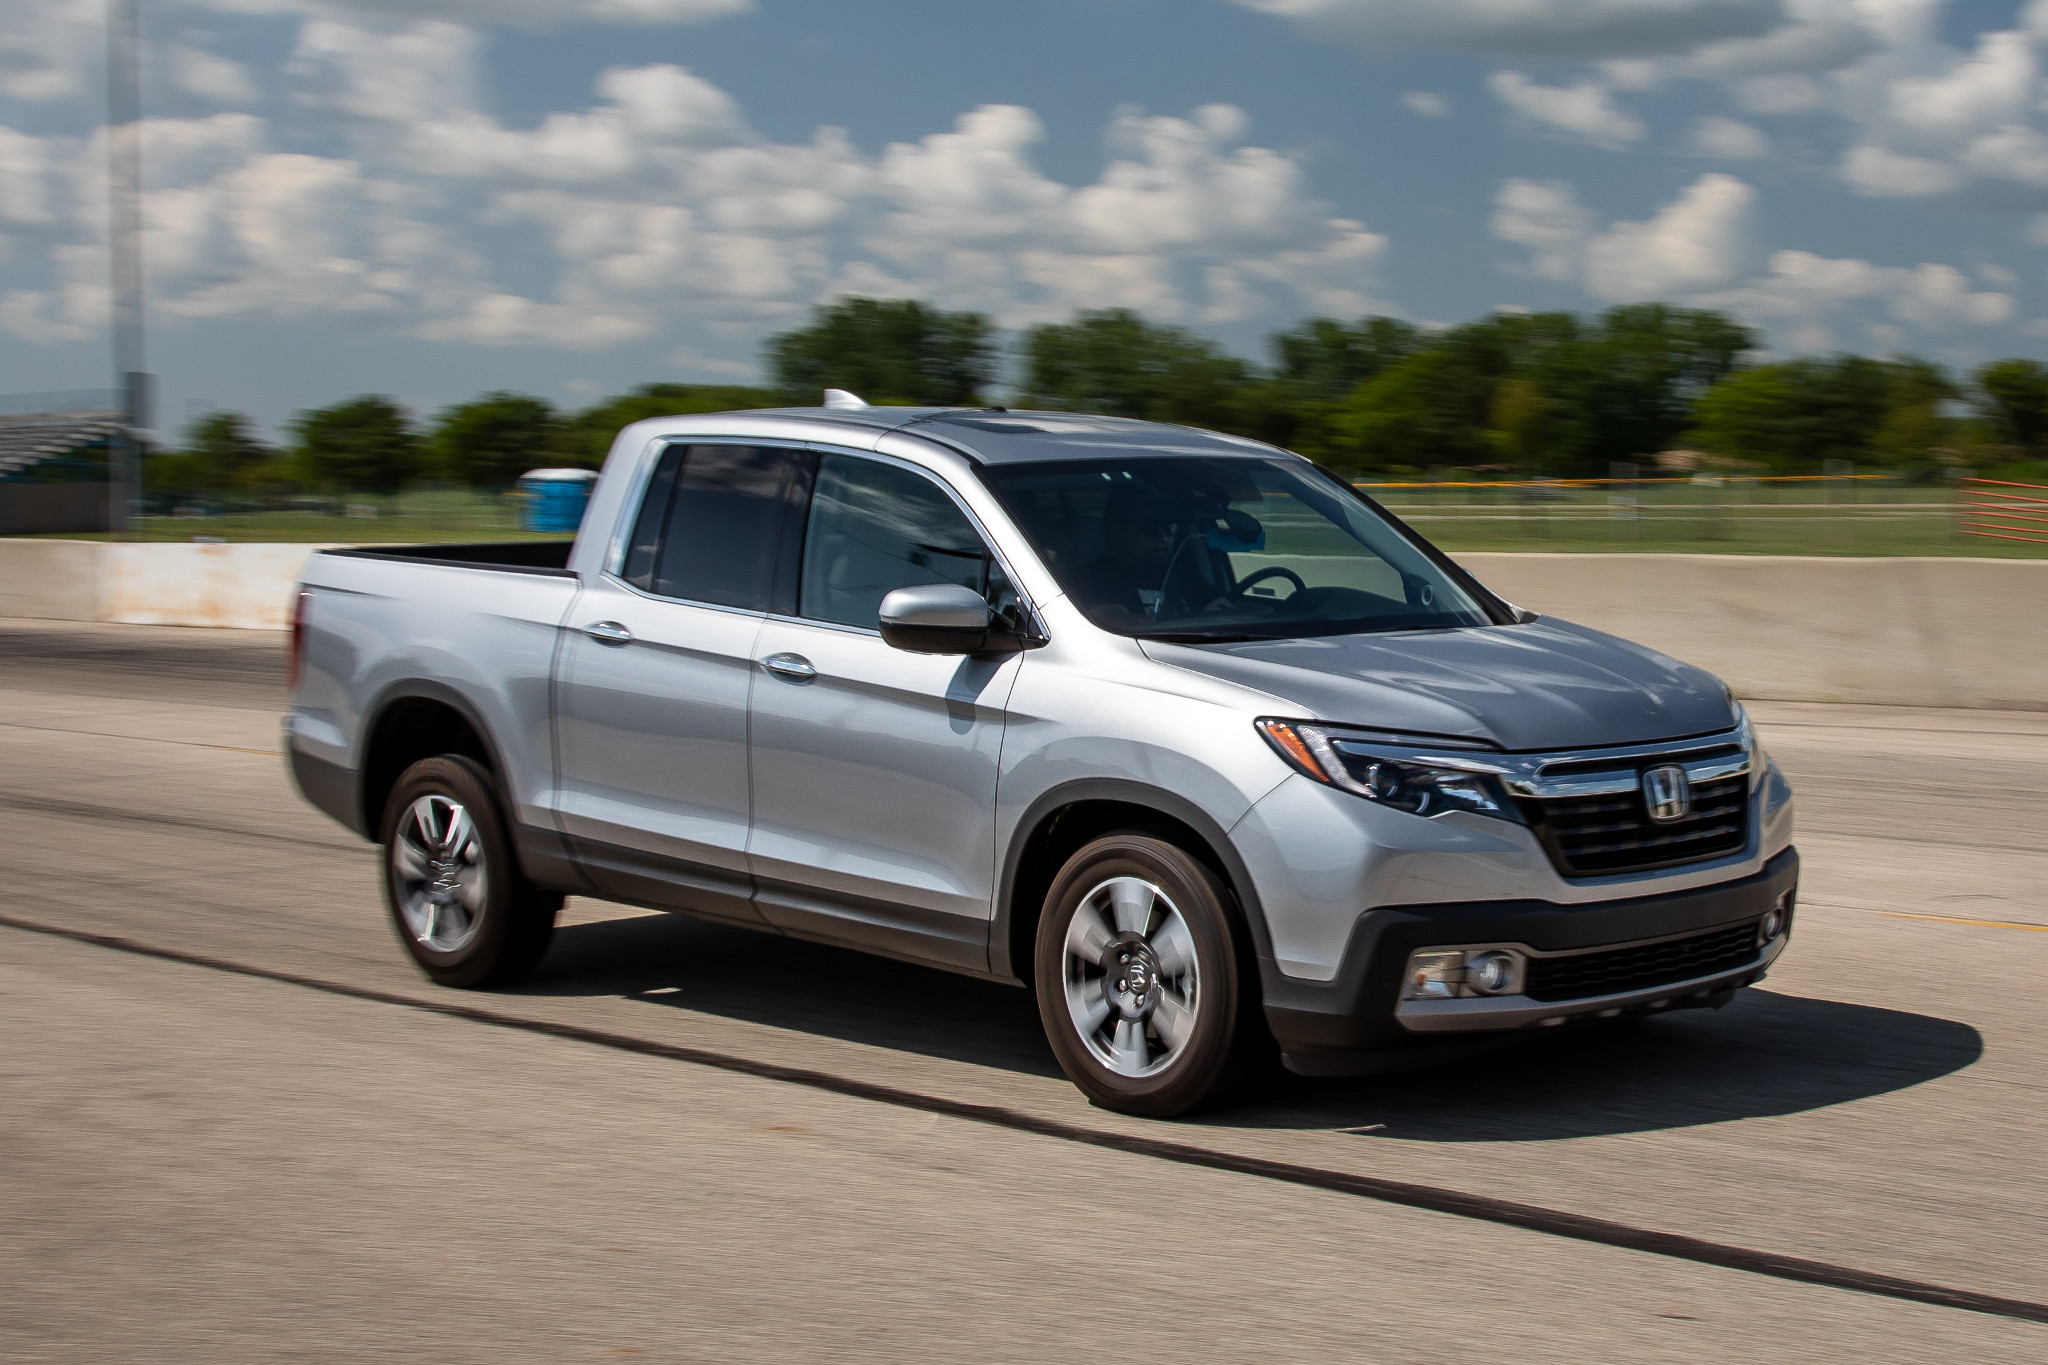 All the Pickup Truck News: Canyon and Ridgeline Reviewed, 2020 Titan XD Emerges and More